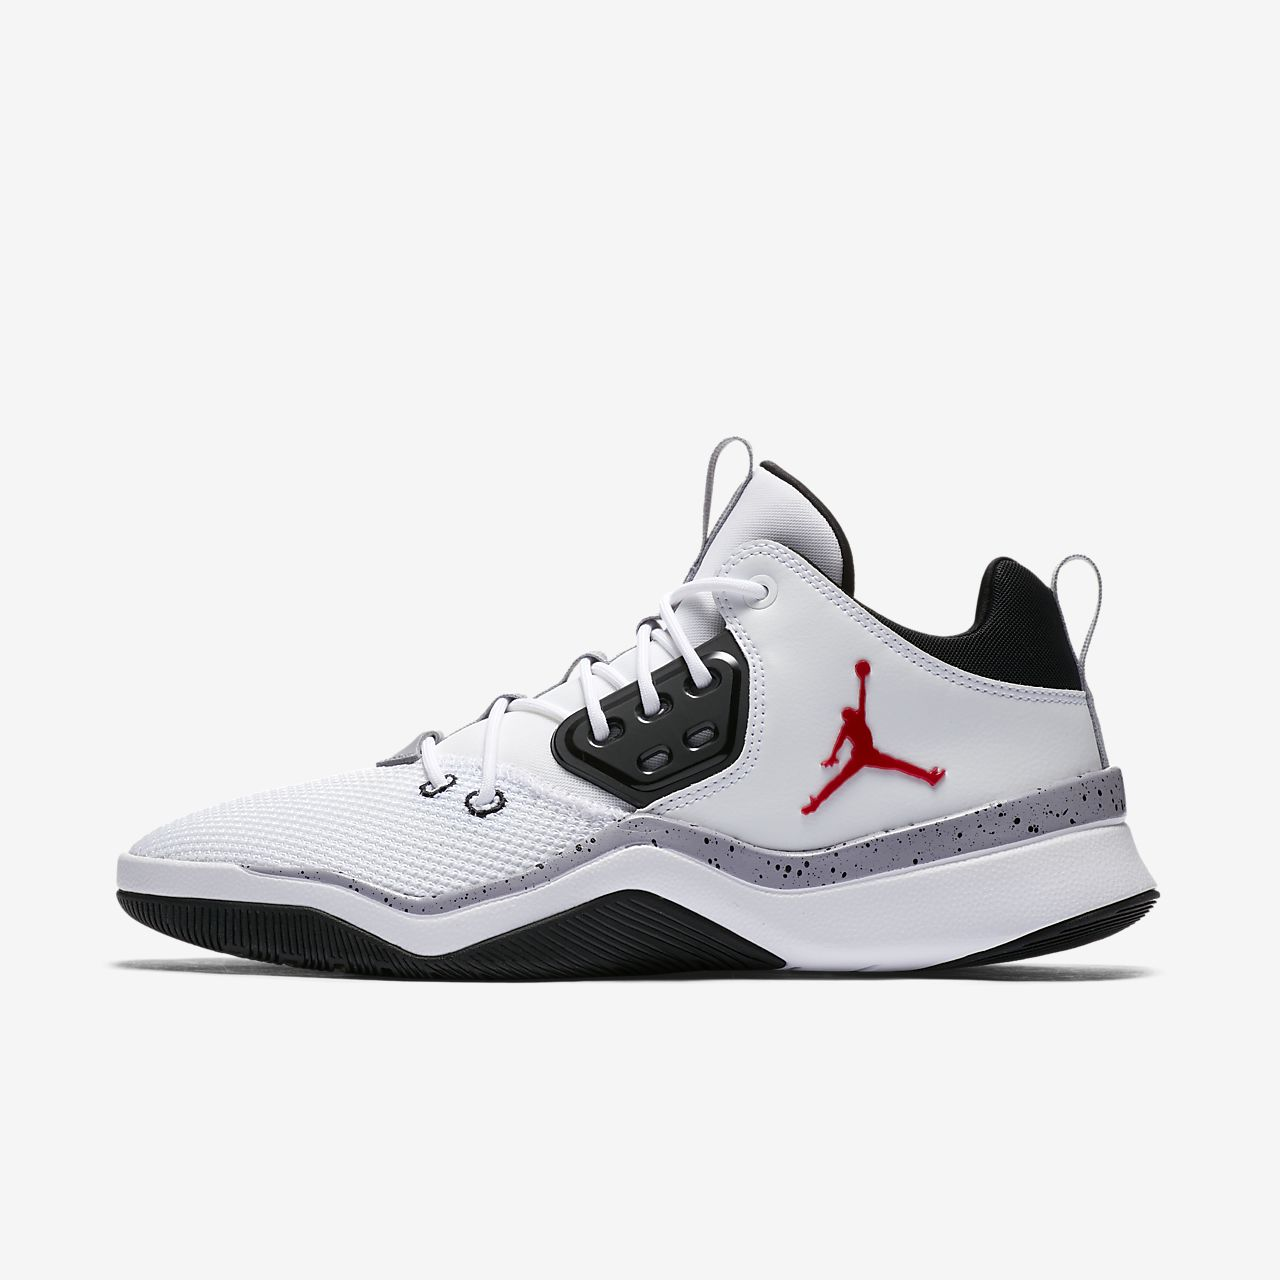 899ad5c9b795 Jordan DNA Men s Shoe. Nike.com GB